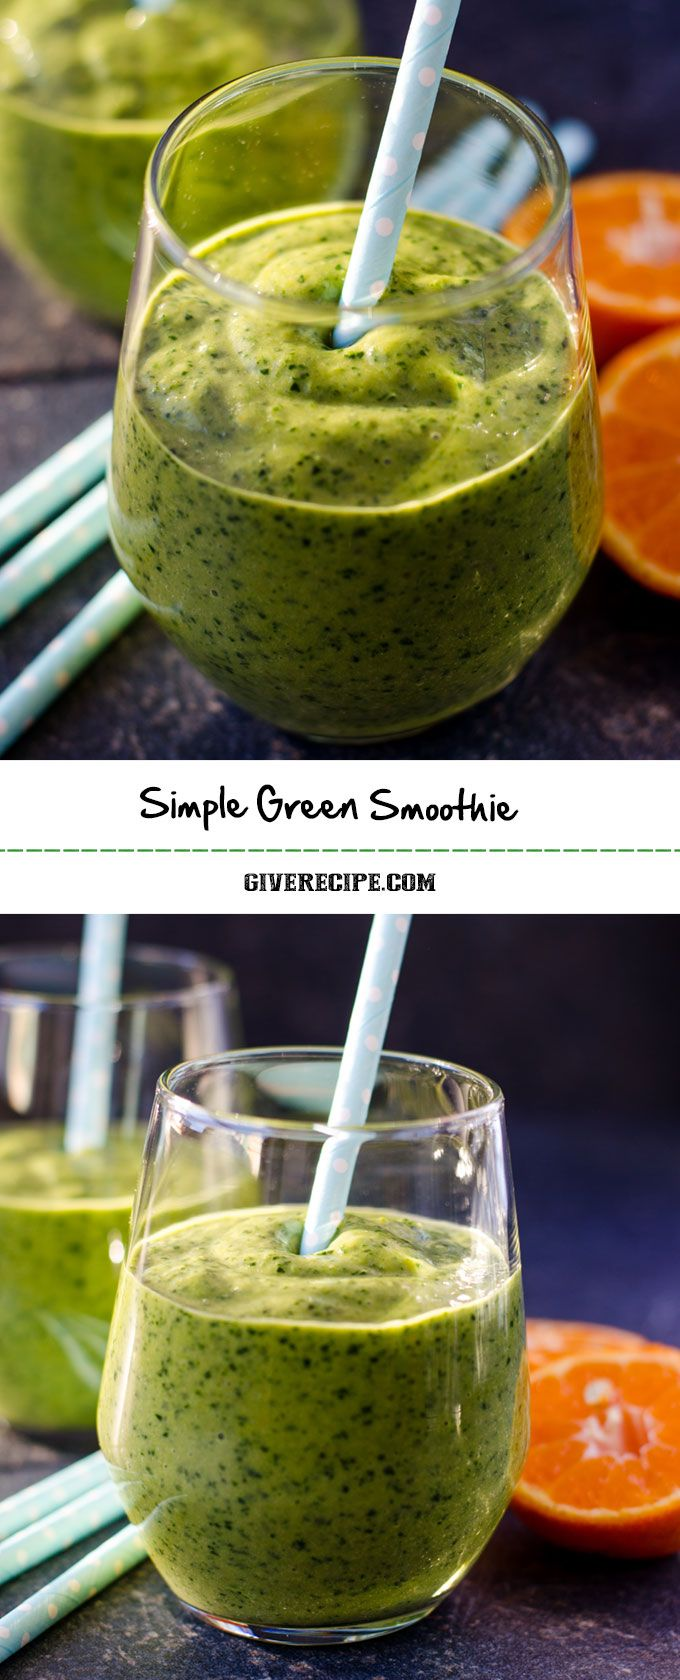 Simple Green Smoothie is a detox for your body. This is as yummy as your kids' favorite smoothies. | giverecipe.com | #smoothie #avocado